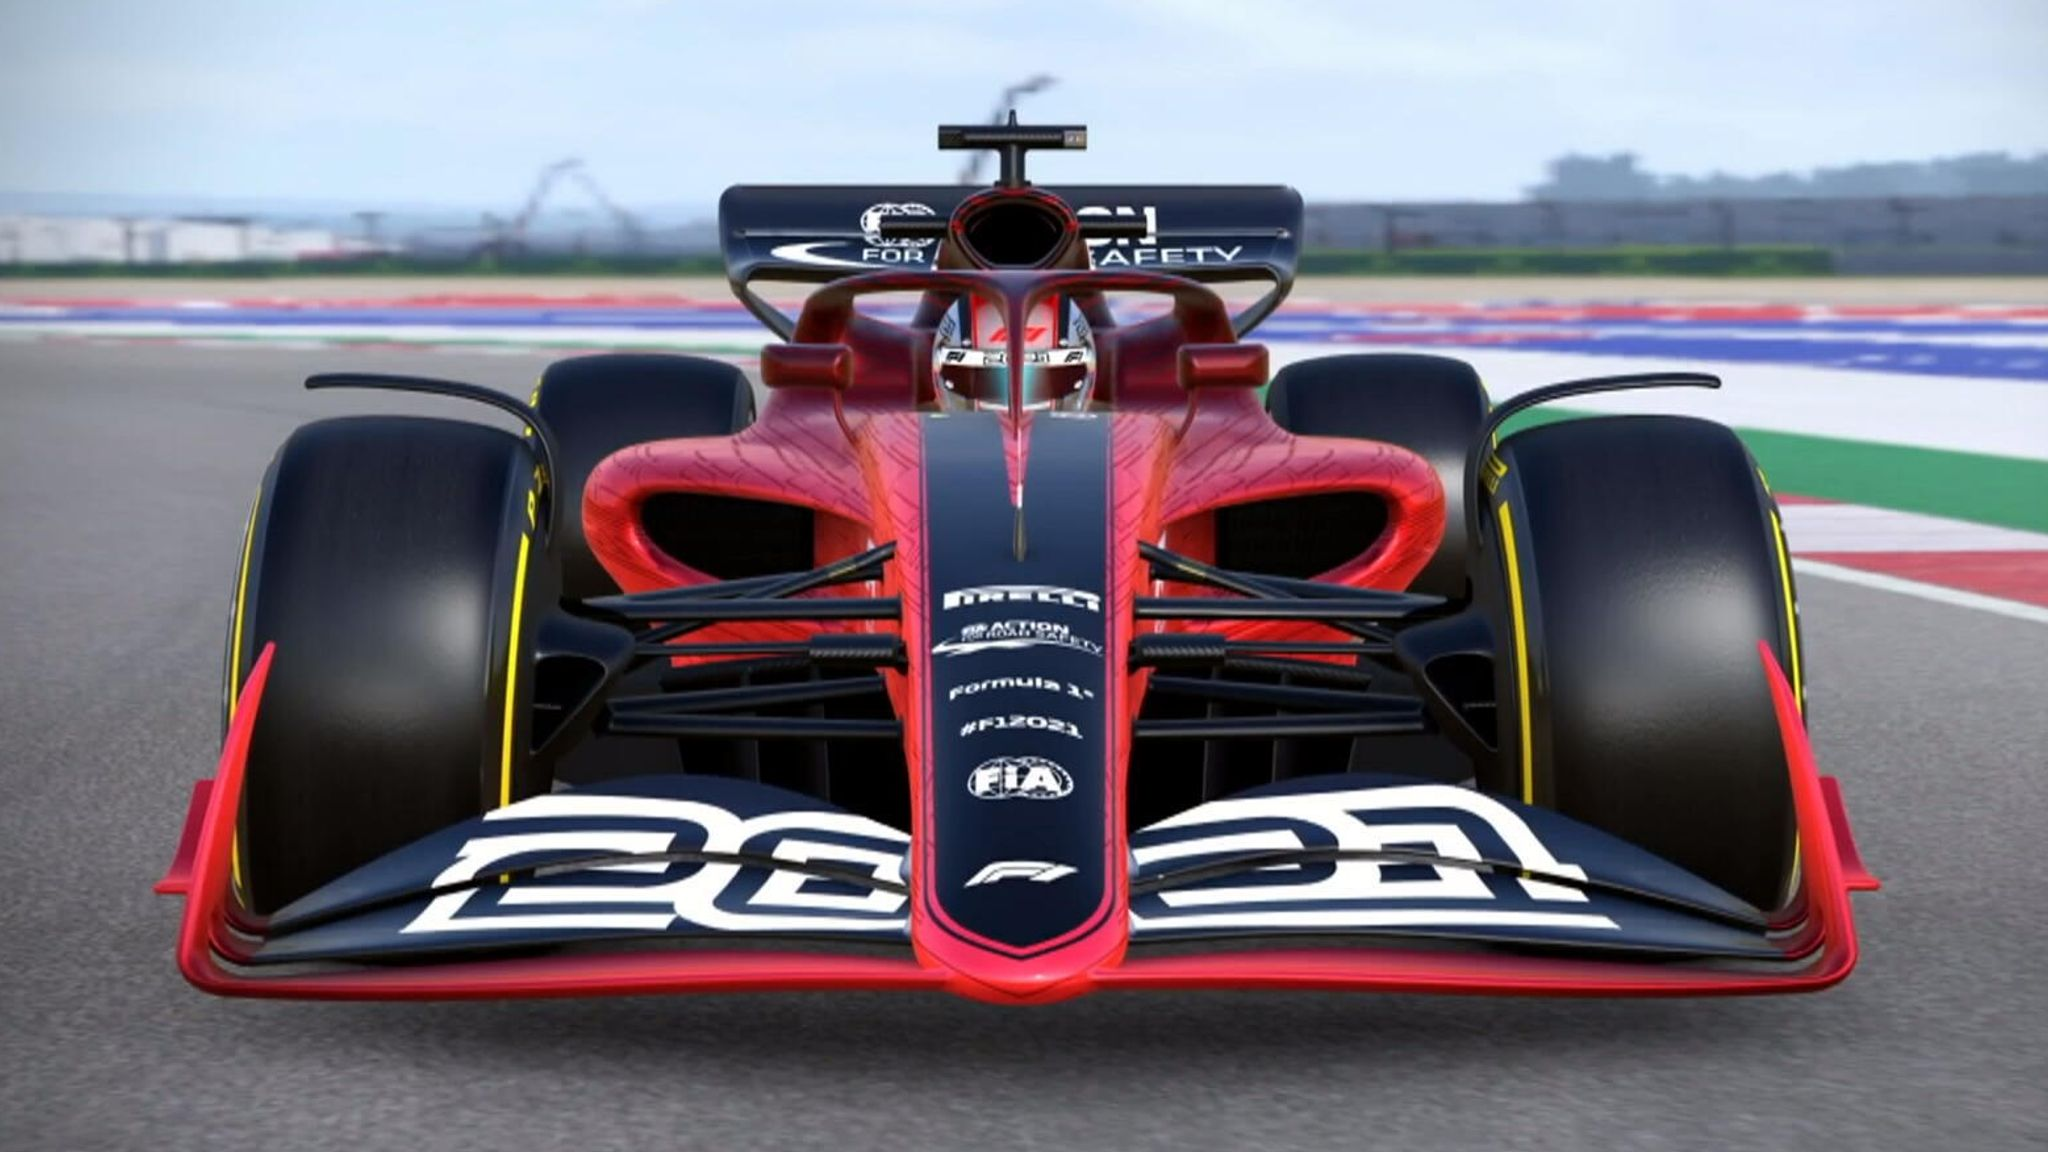 F1 2021 overhaul delayed until 2022 due to coronavirus pandemic ...